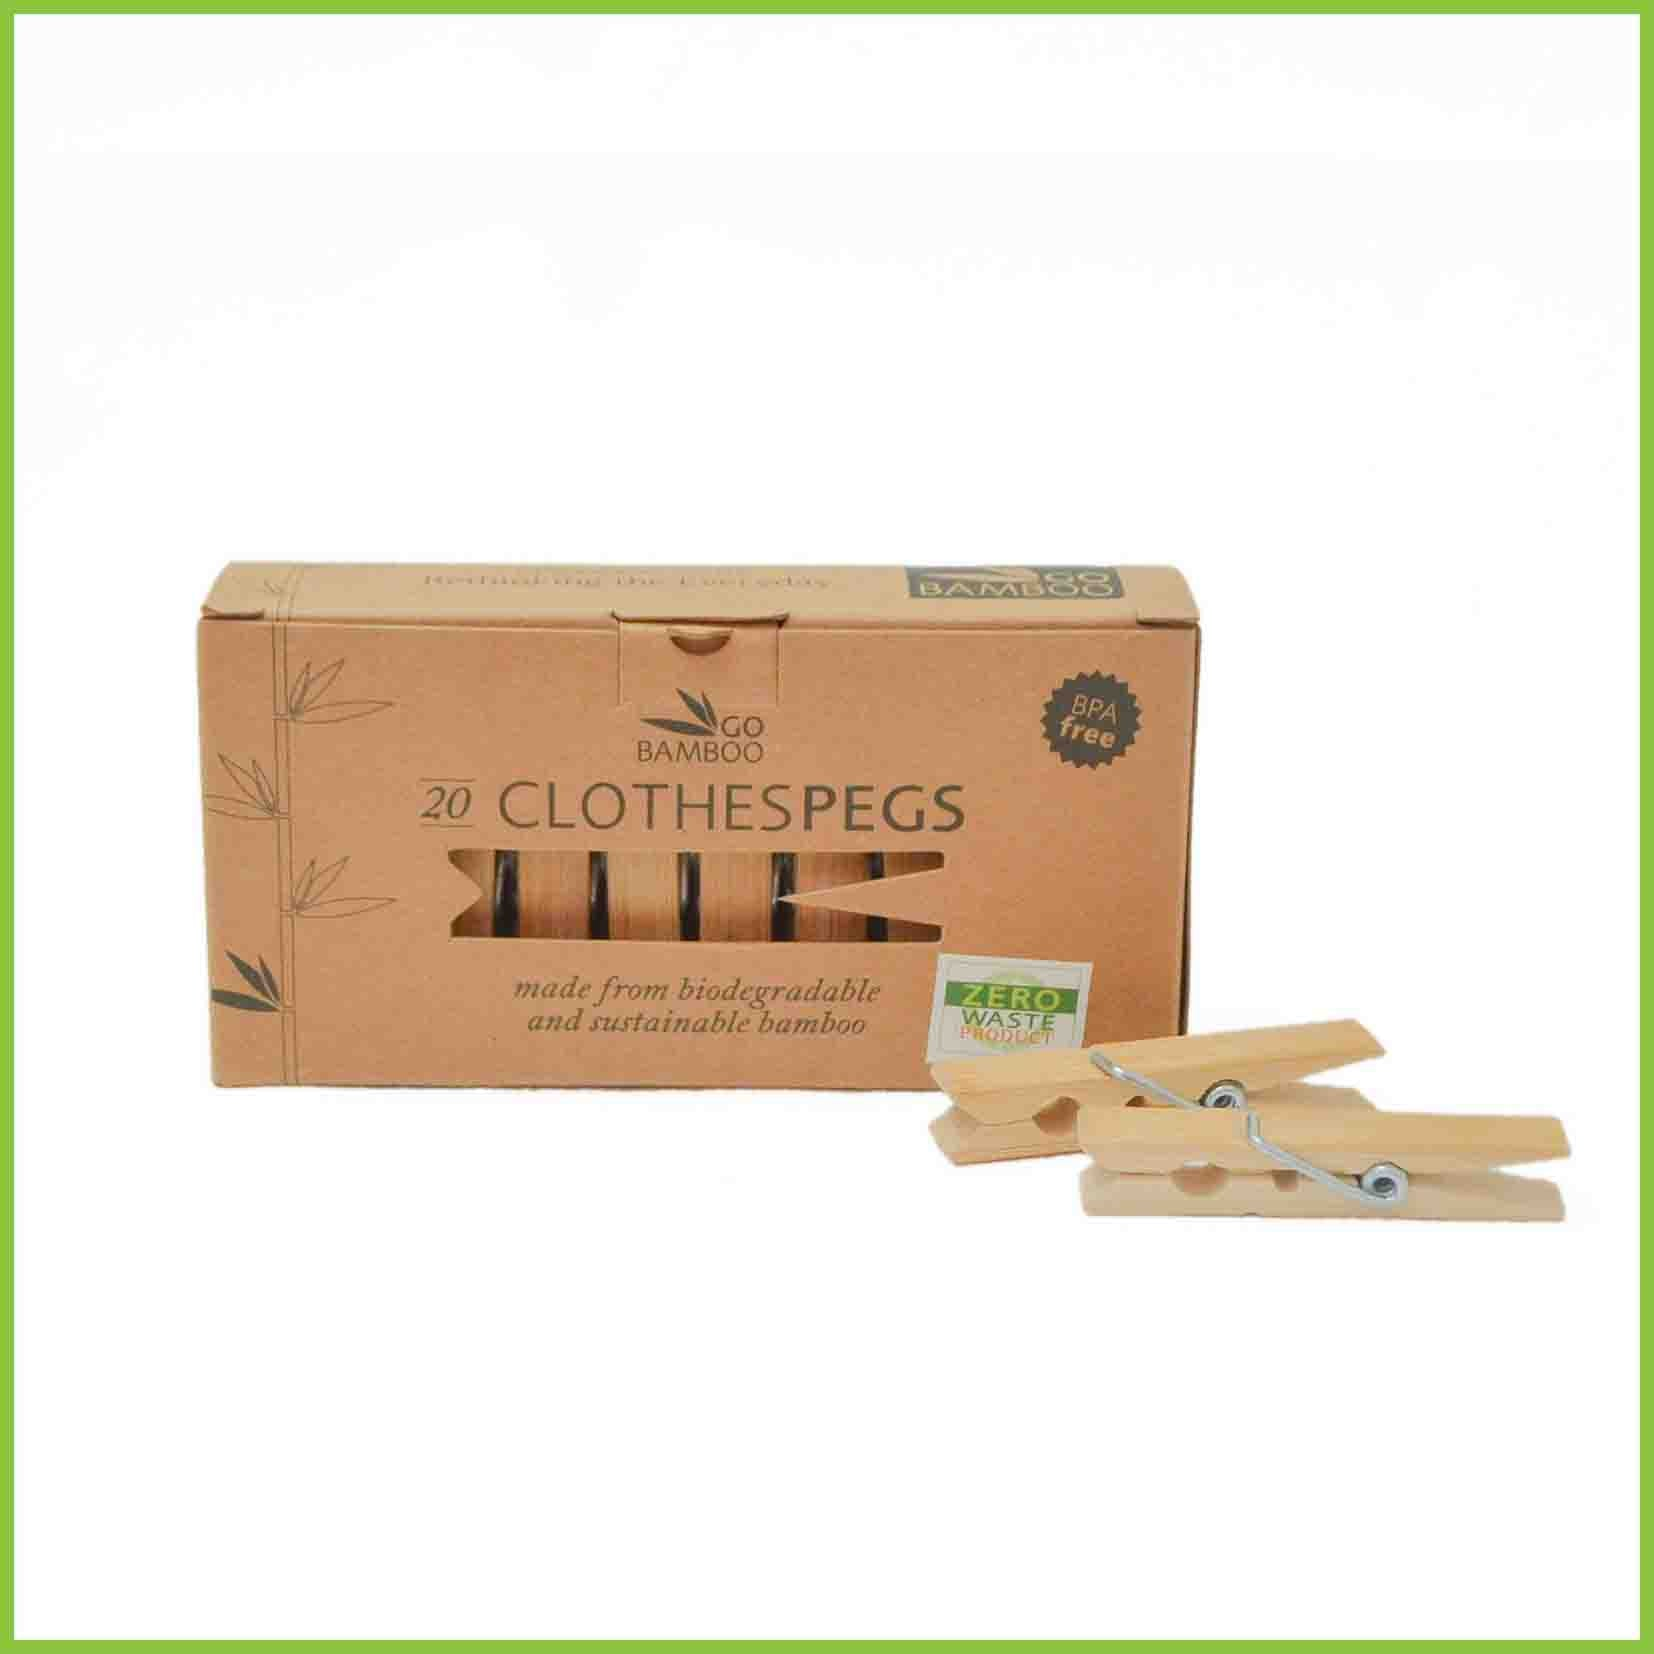 Go Bamboo clothes pegs in a box.